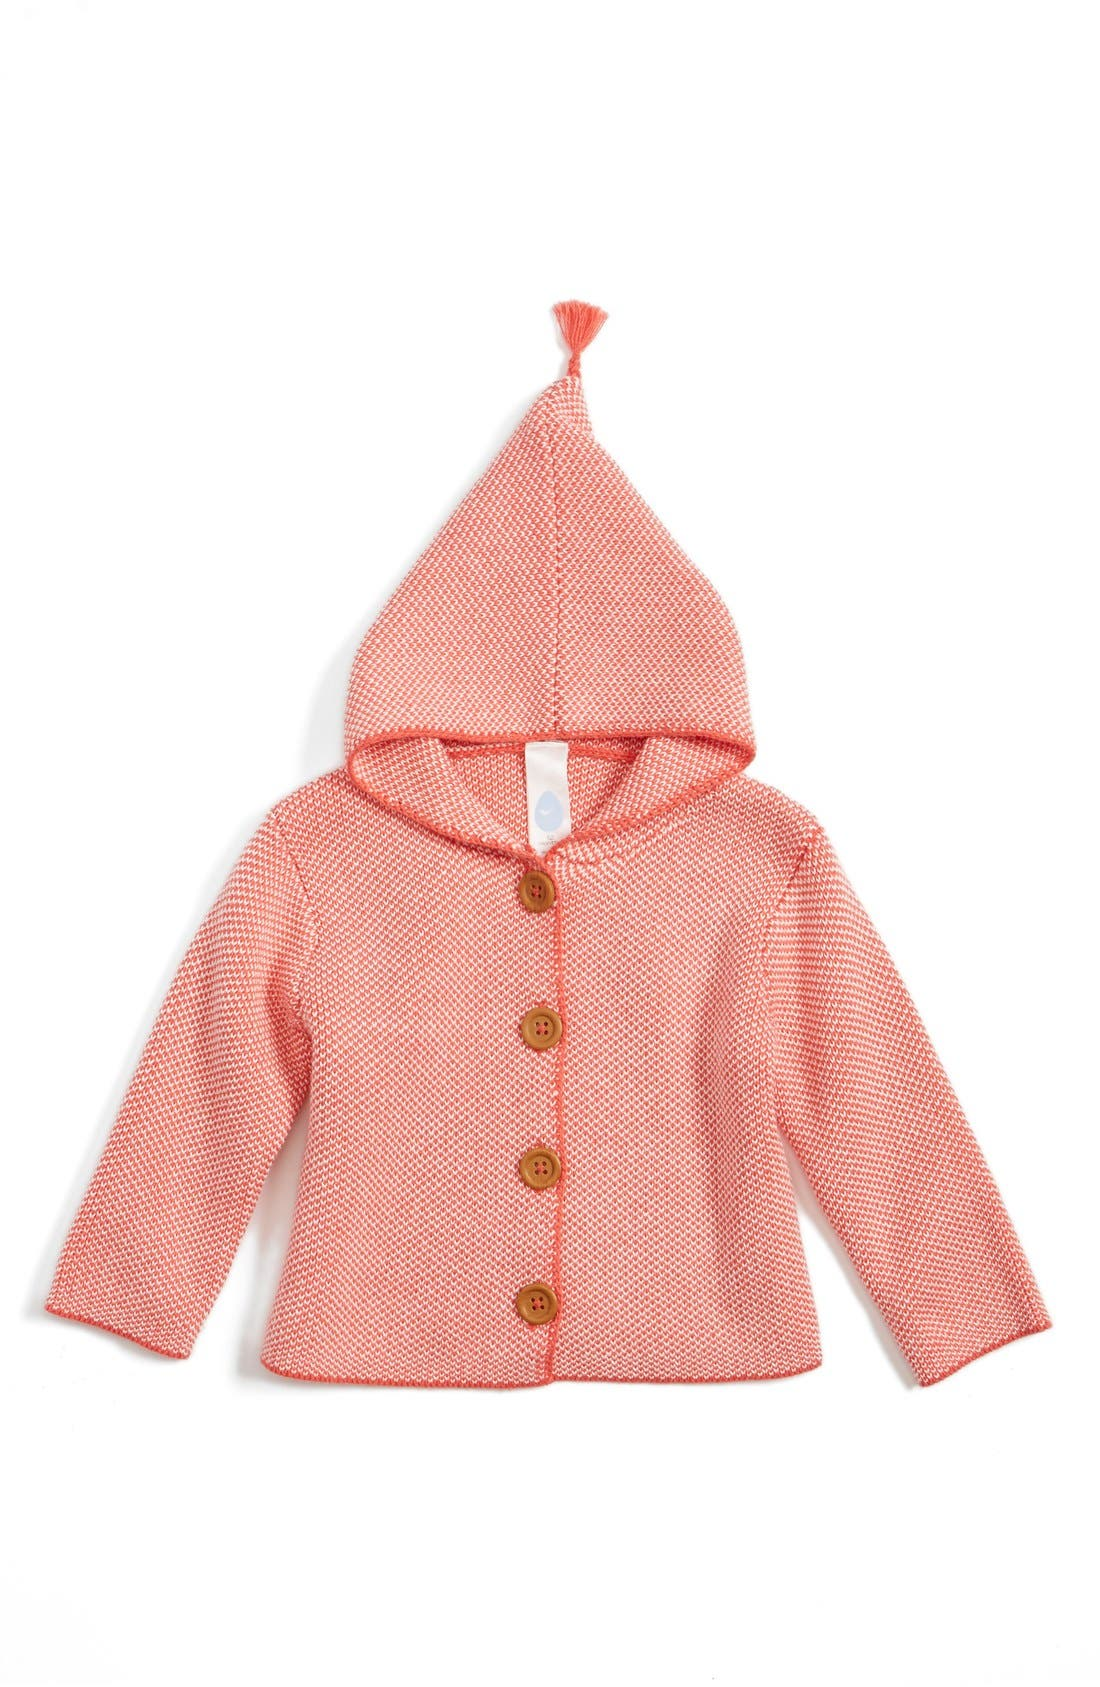 Main Image - Stem Baby Organic Cotton Hooded Cardigan (Baby)